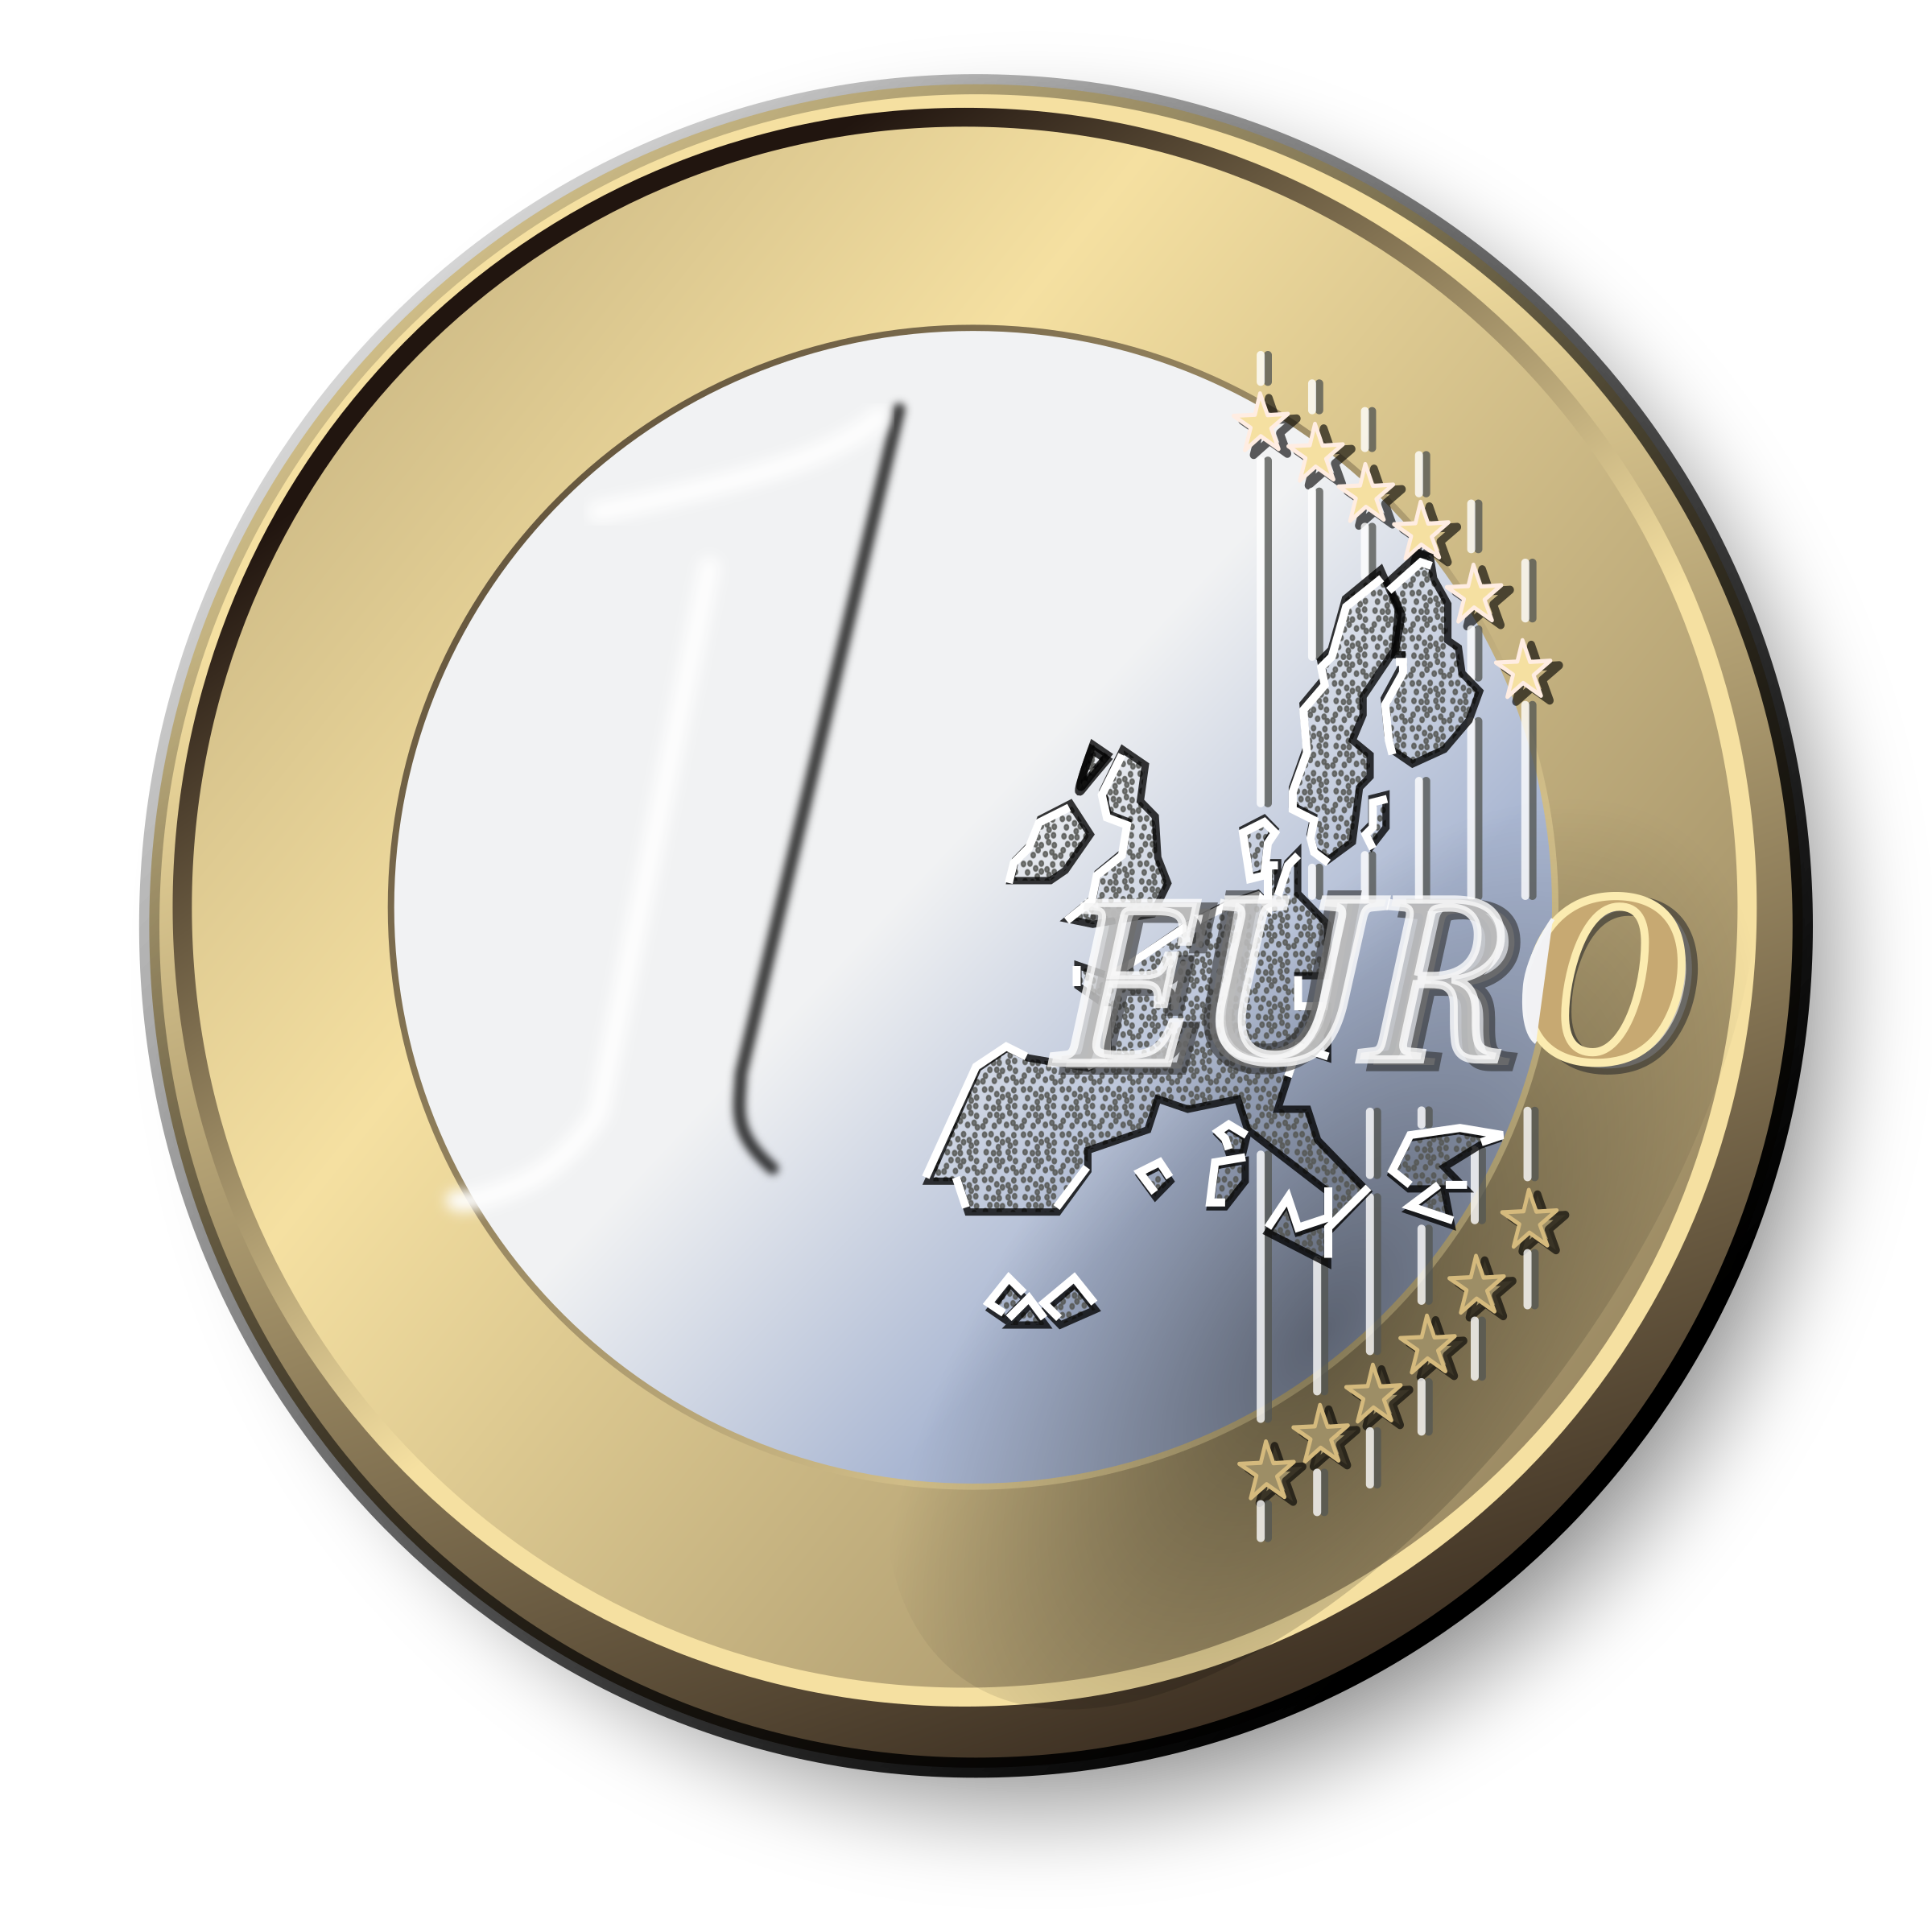 One Euro Coin by LX